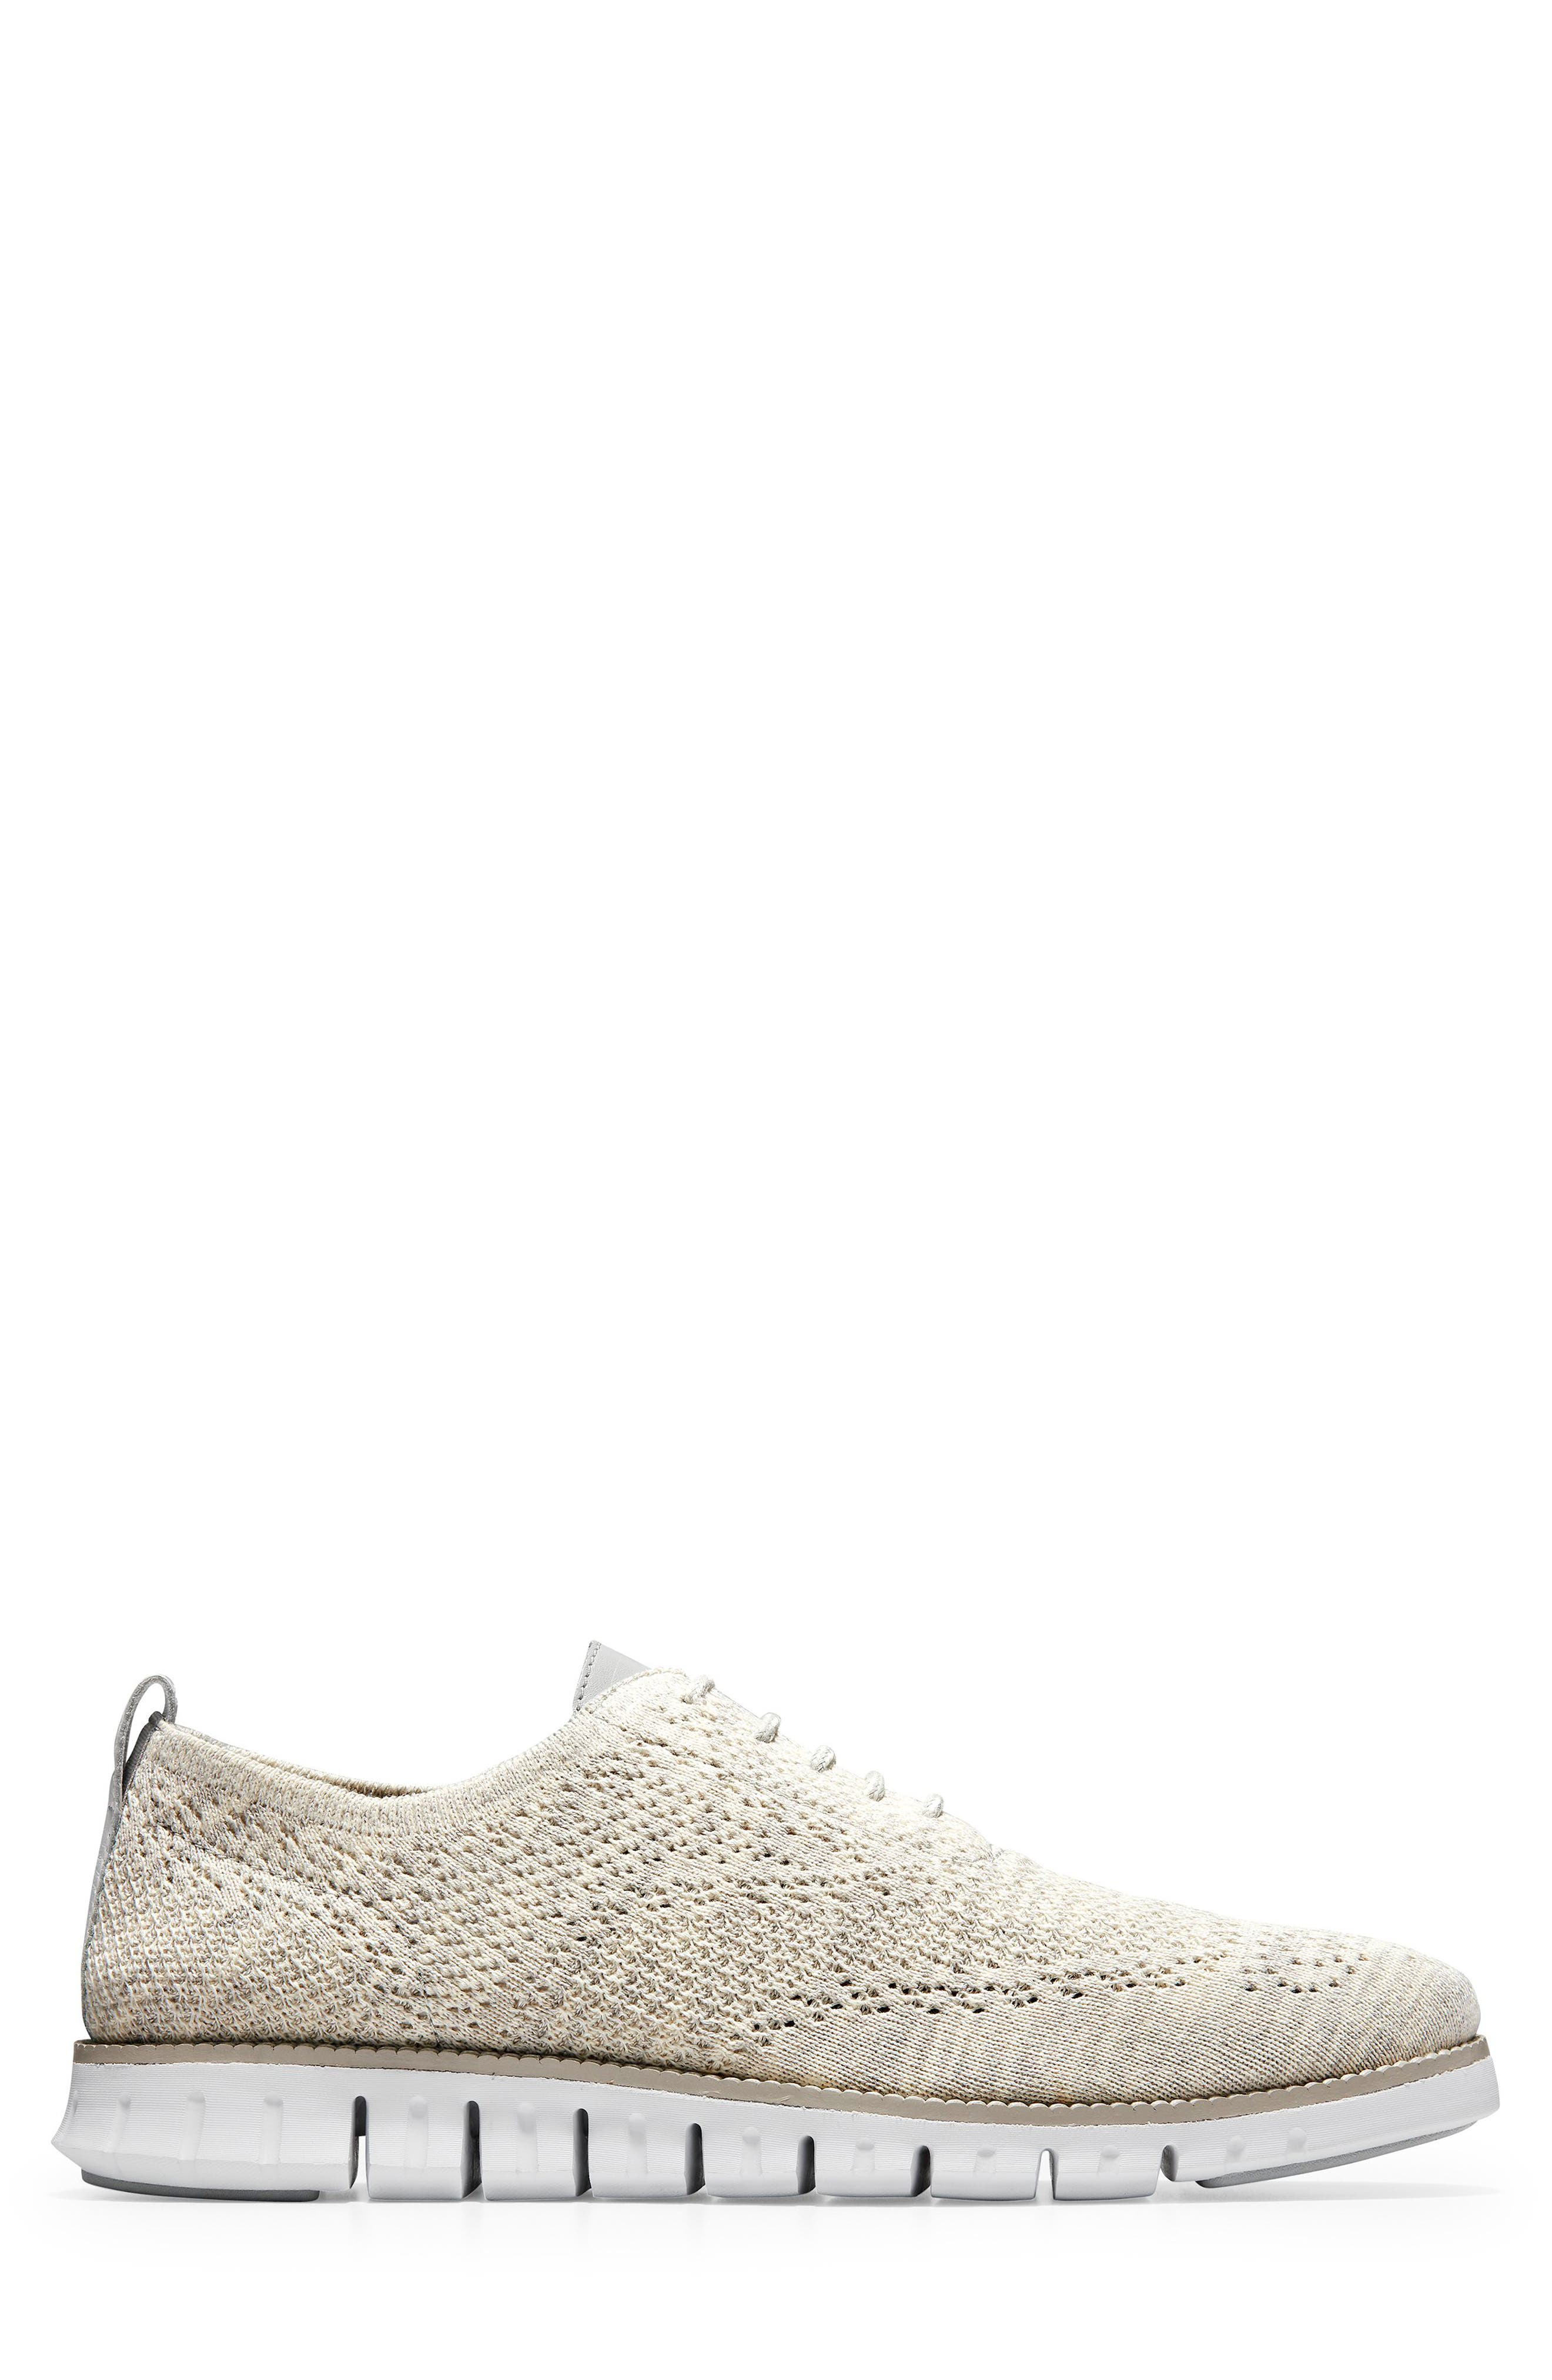 ZeroGrand Stitchlite Woven Wool Wingtip,                             Alternate thumbnail 3, color,                             HARBOR MIST KNIT